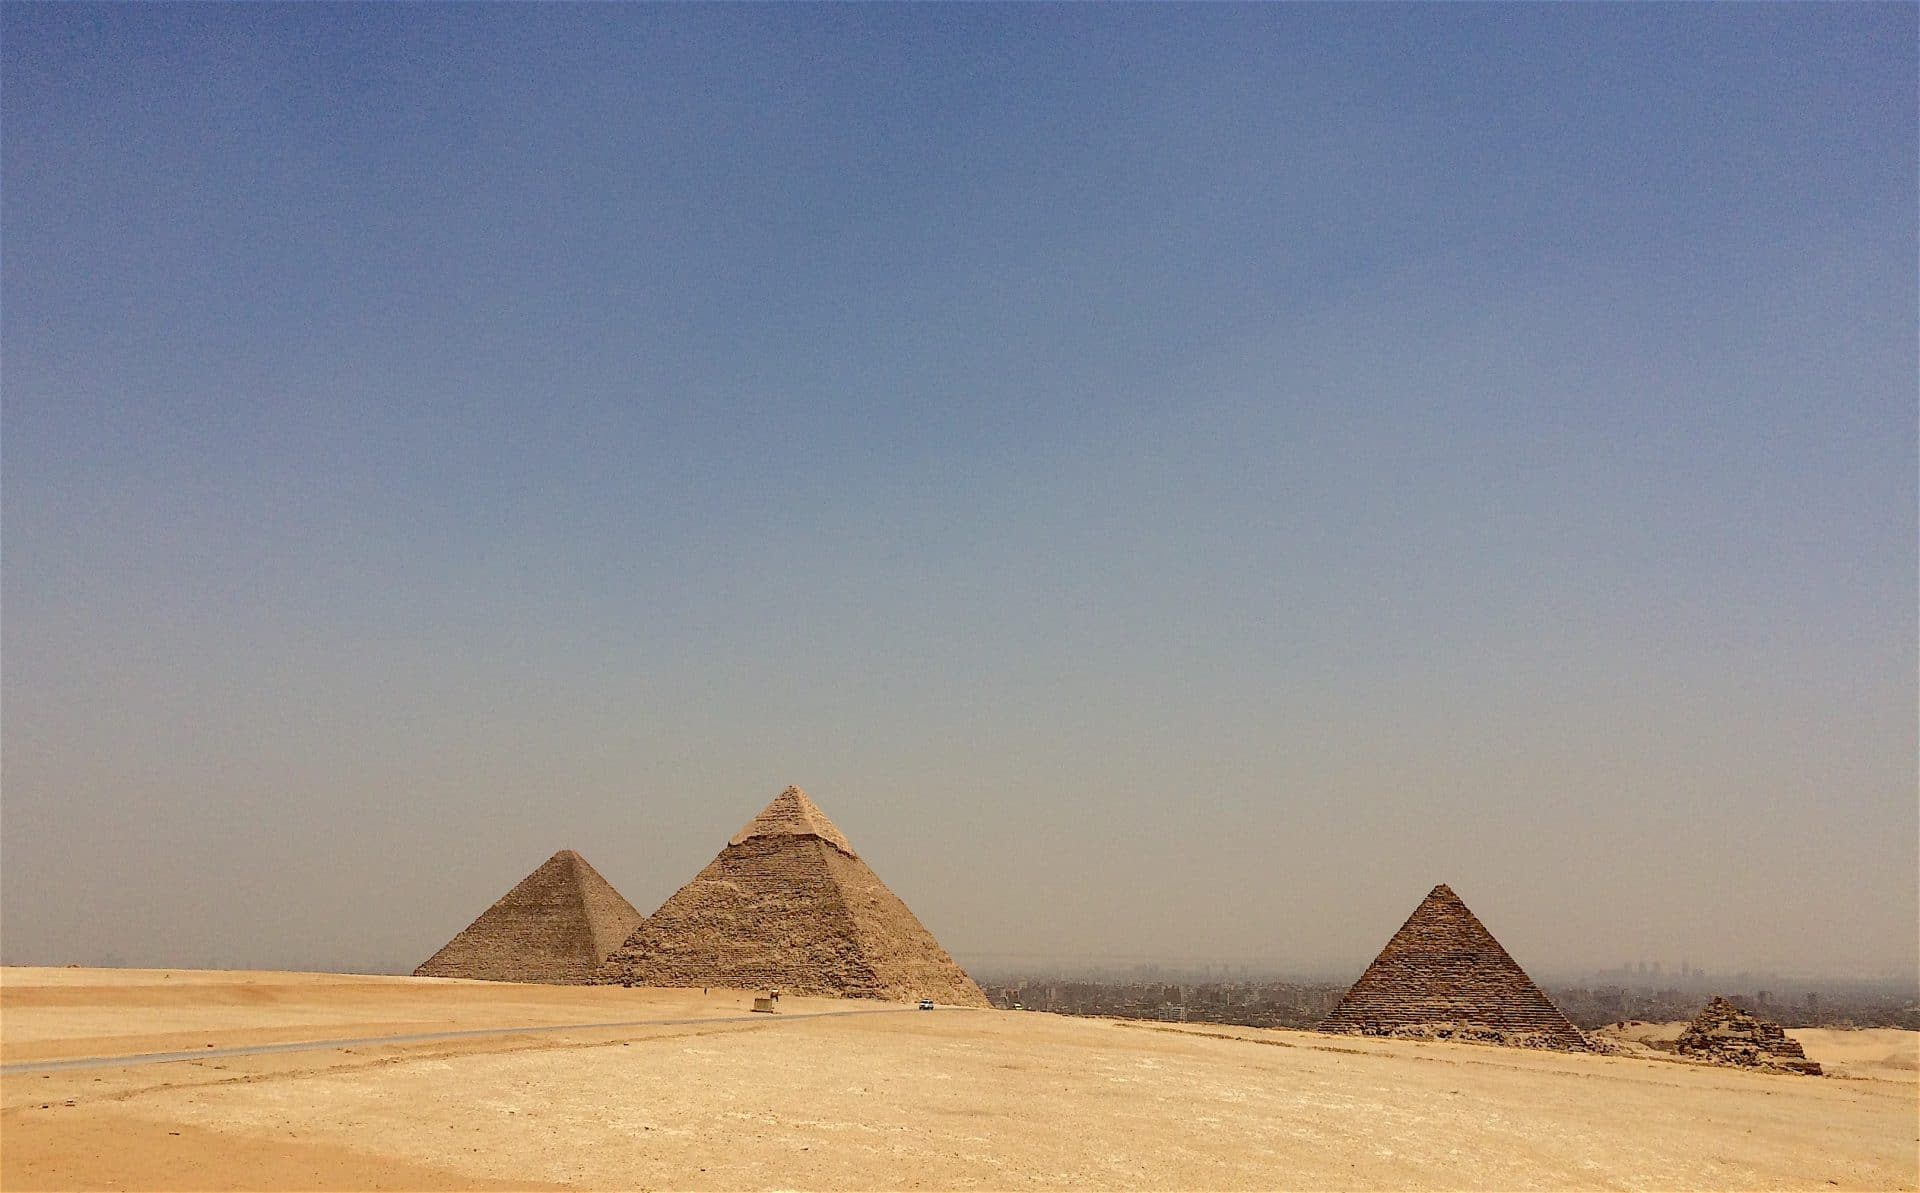 Arguing that Africa's Pyramids Built by Aliens Is Rooted in Racism, Arguing that Africa's Pyramids Built by Aliens Is Rooted in Racism